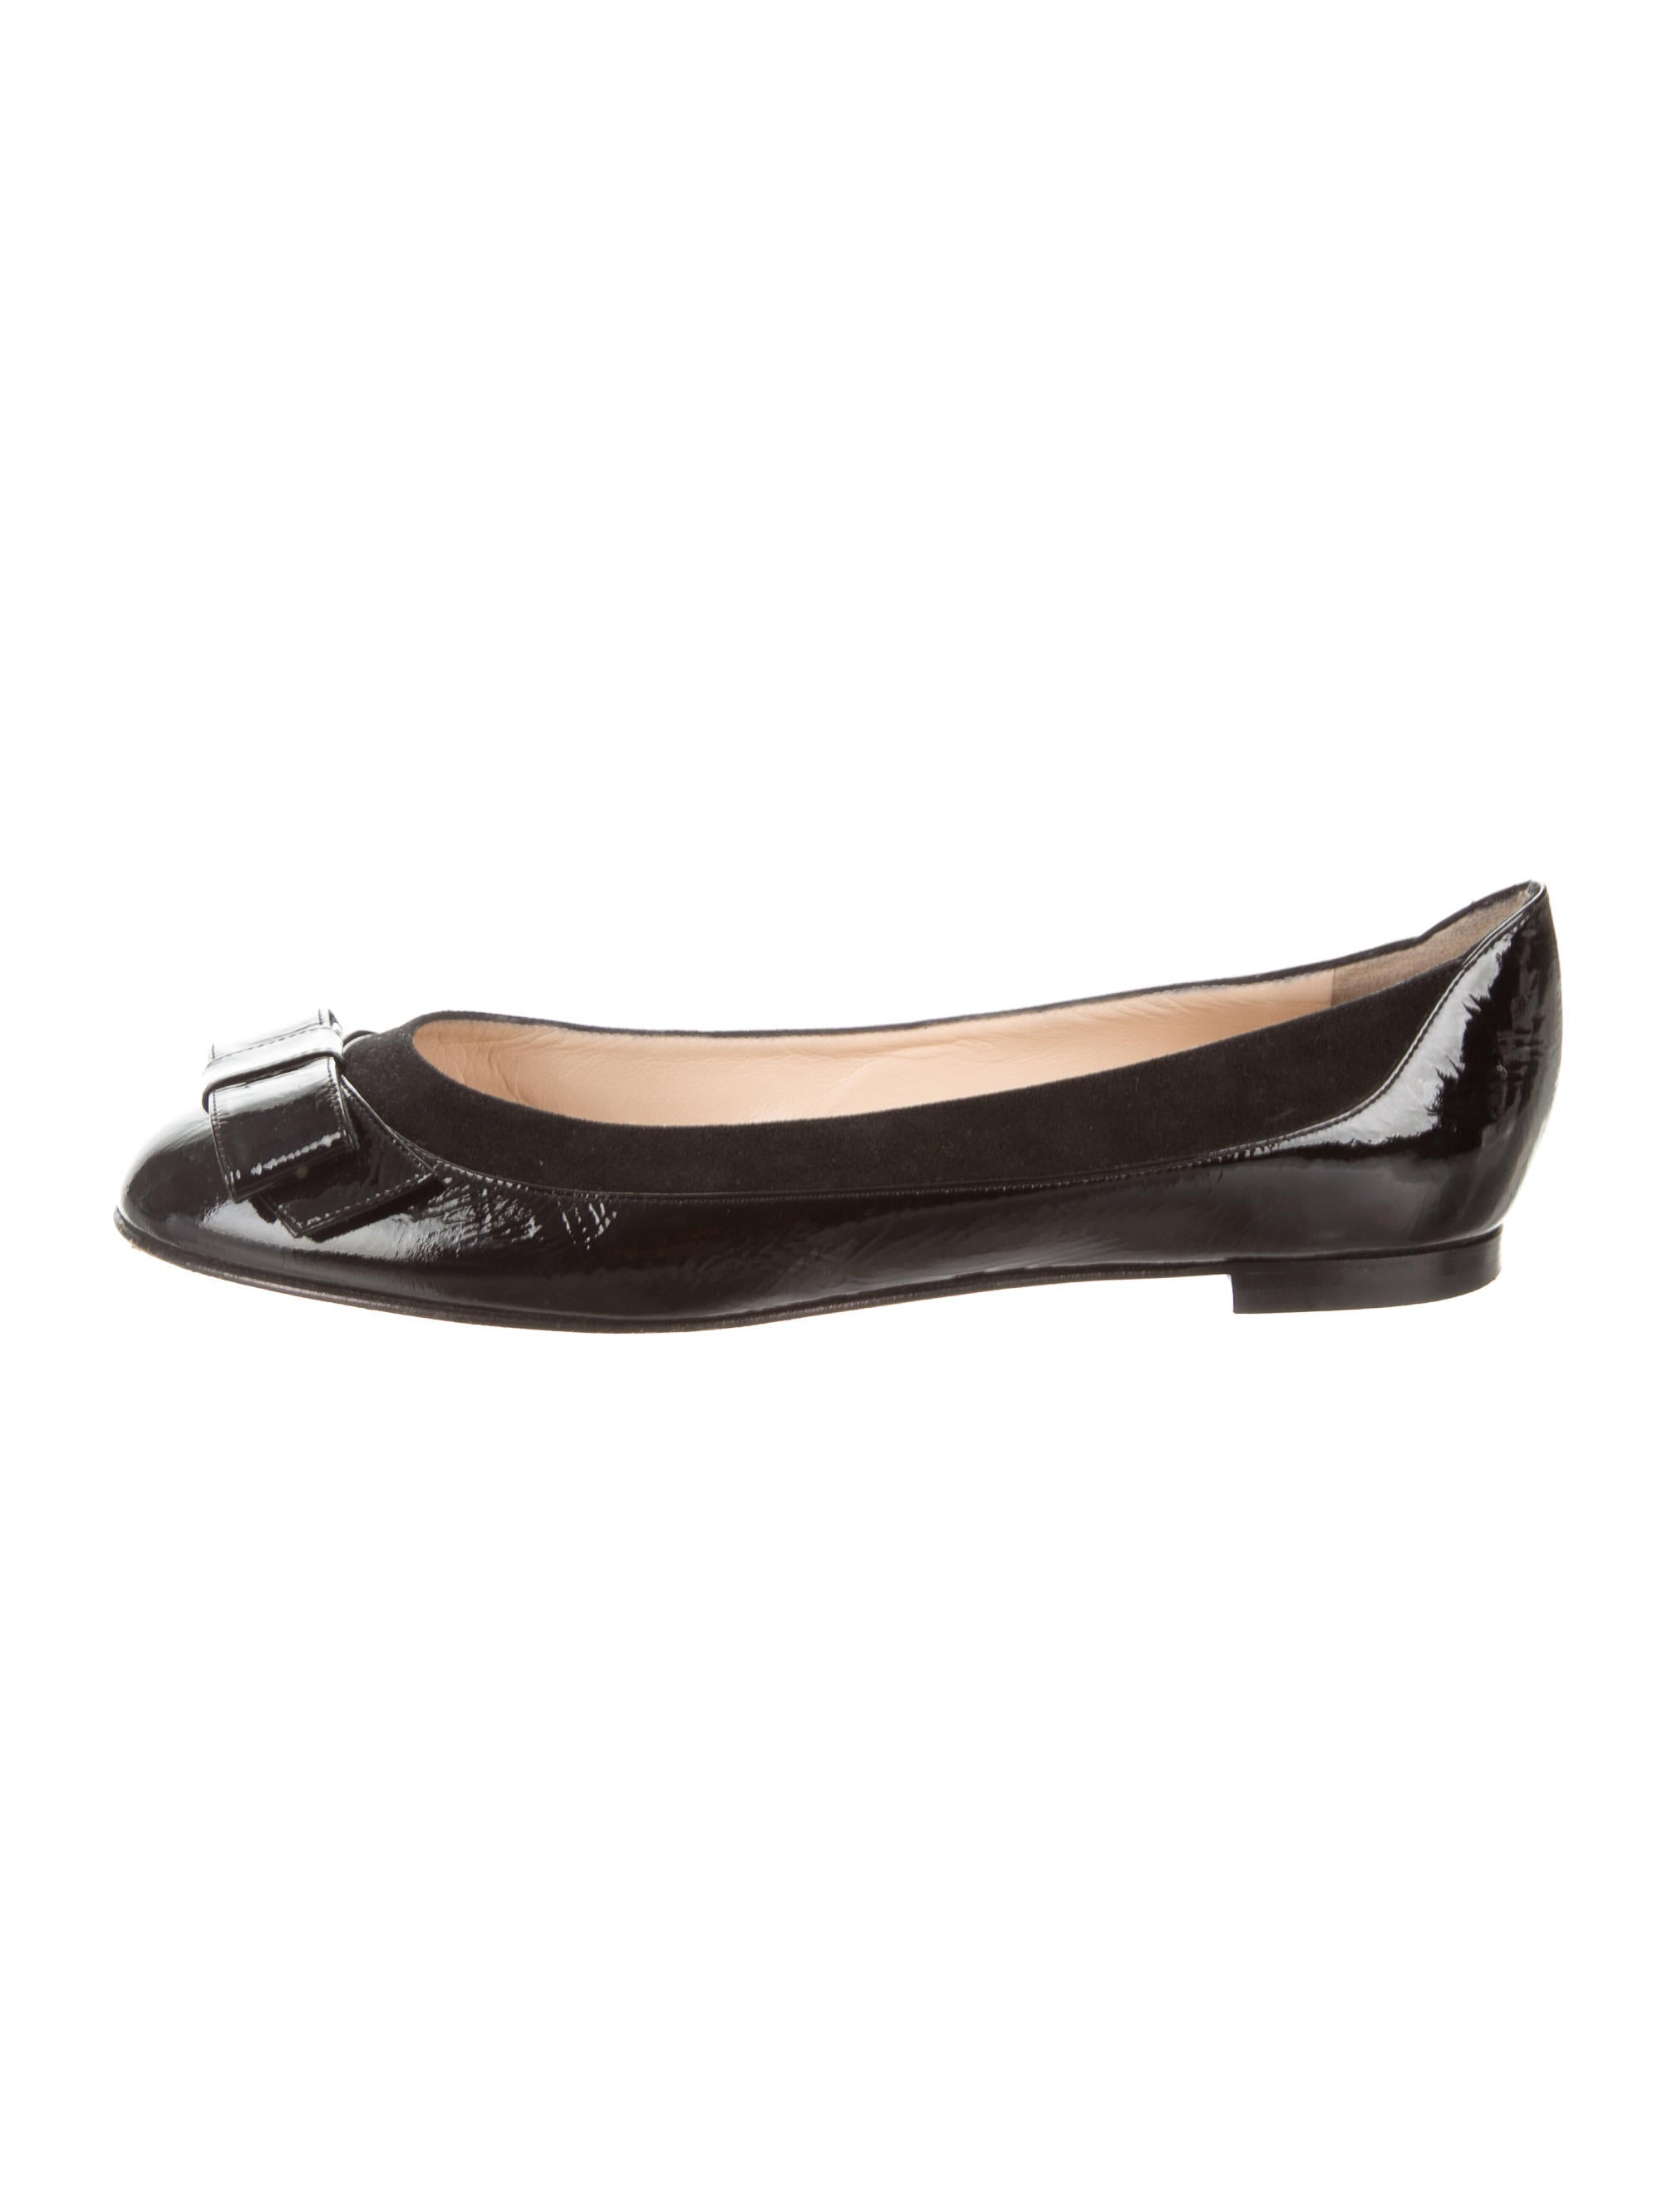 manolo blahnik suede accented patent leather flats shoes